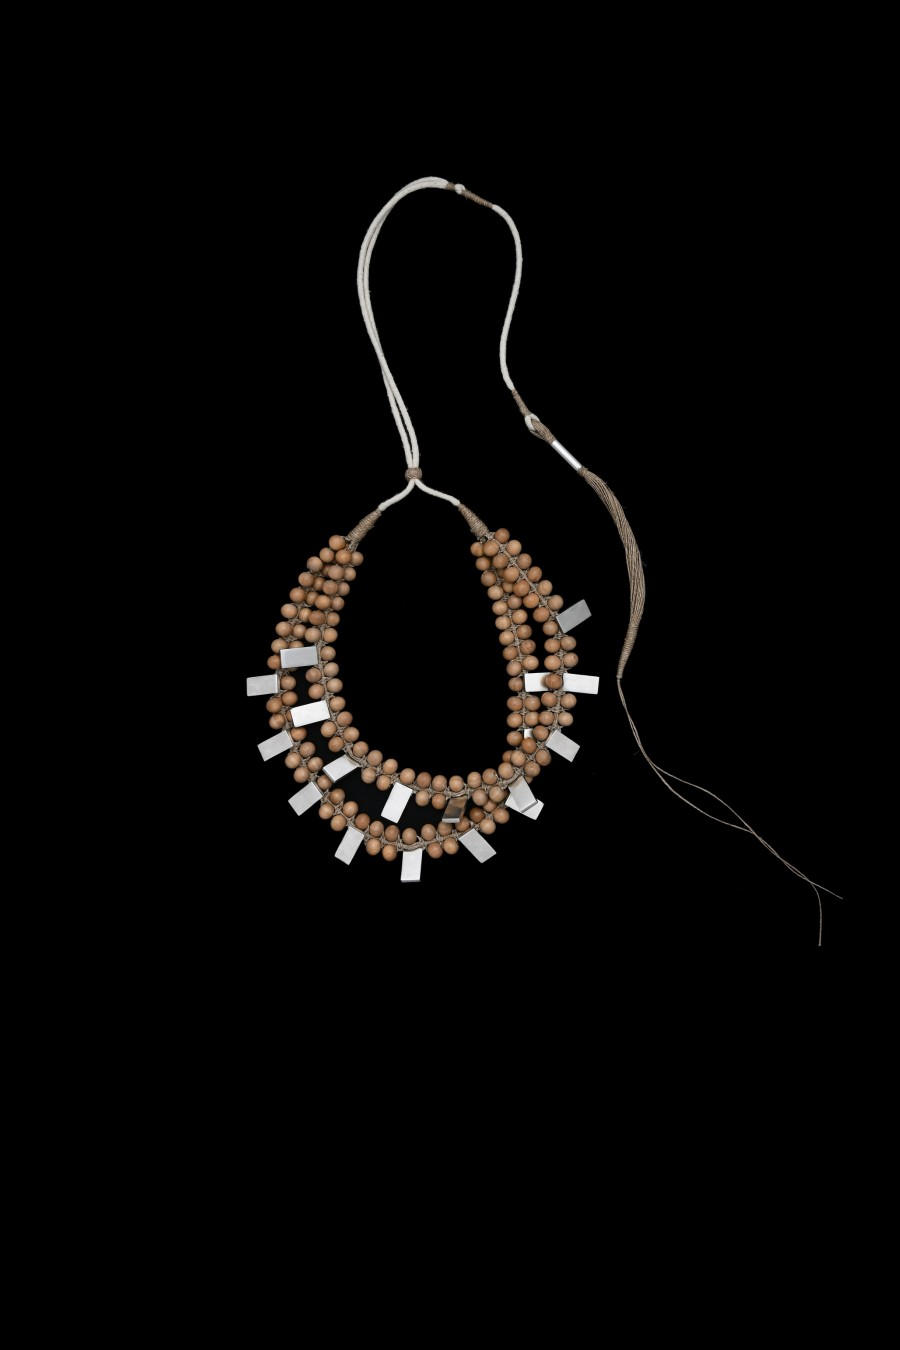 Sandalwoods small beads jute and stainless steel crescent